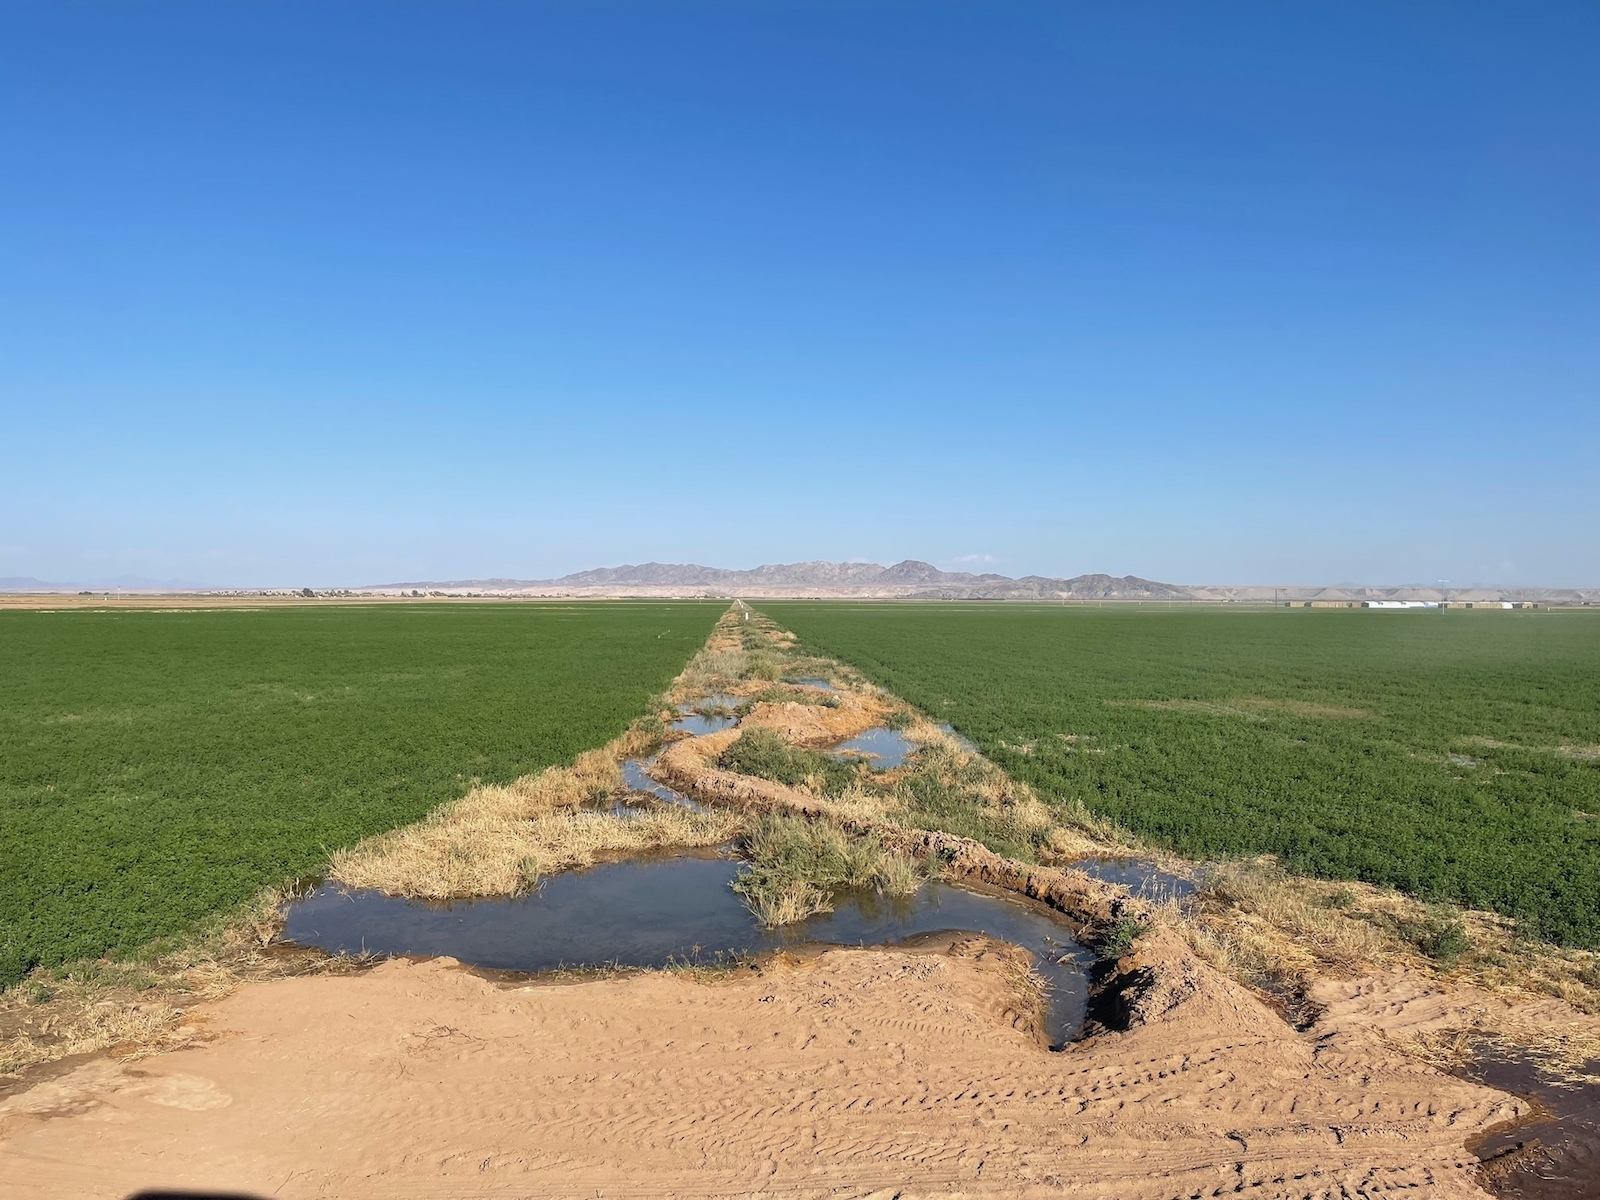 A dirt path between two green fields with a pipe leaking small pools of water